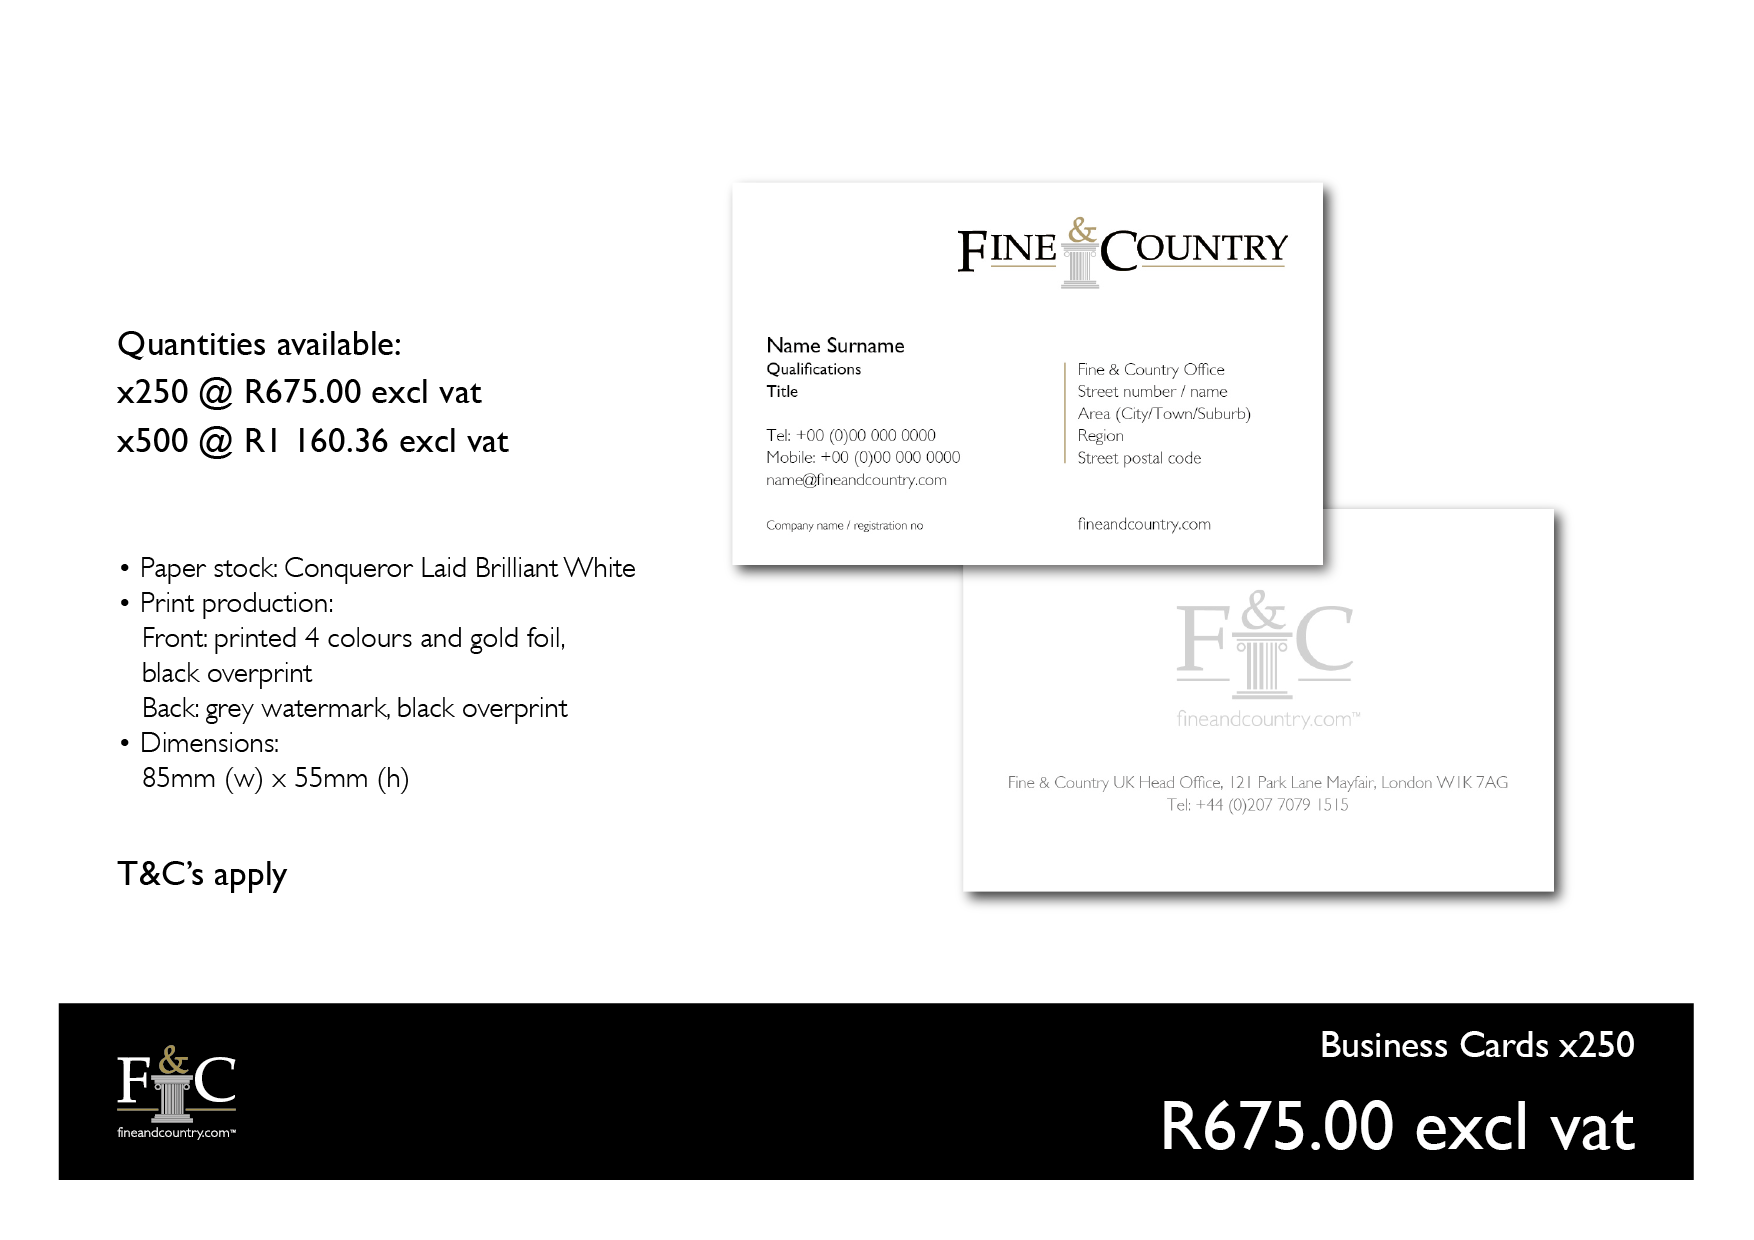 fine and country support desk business cards